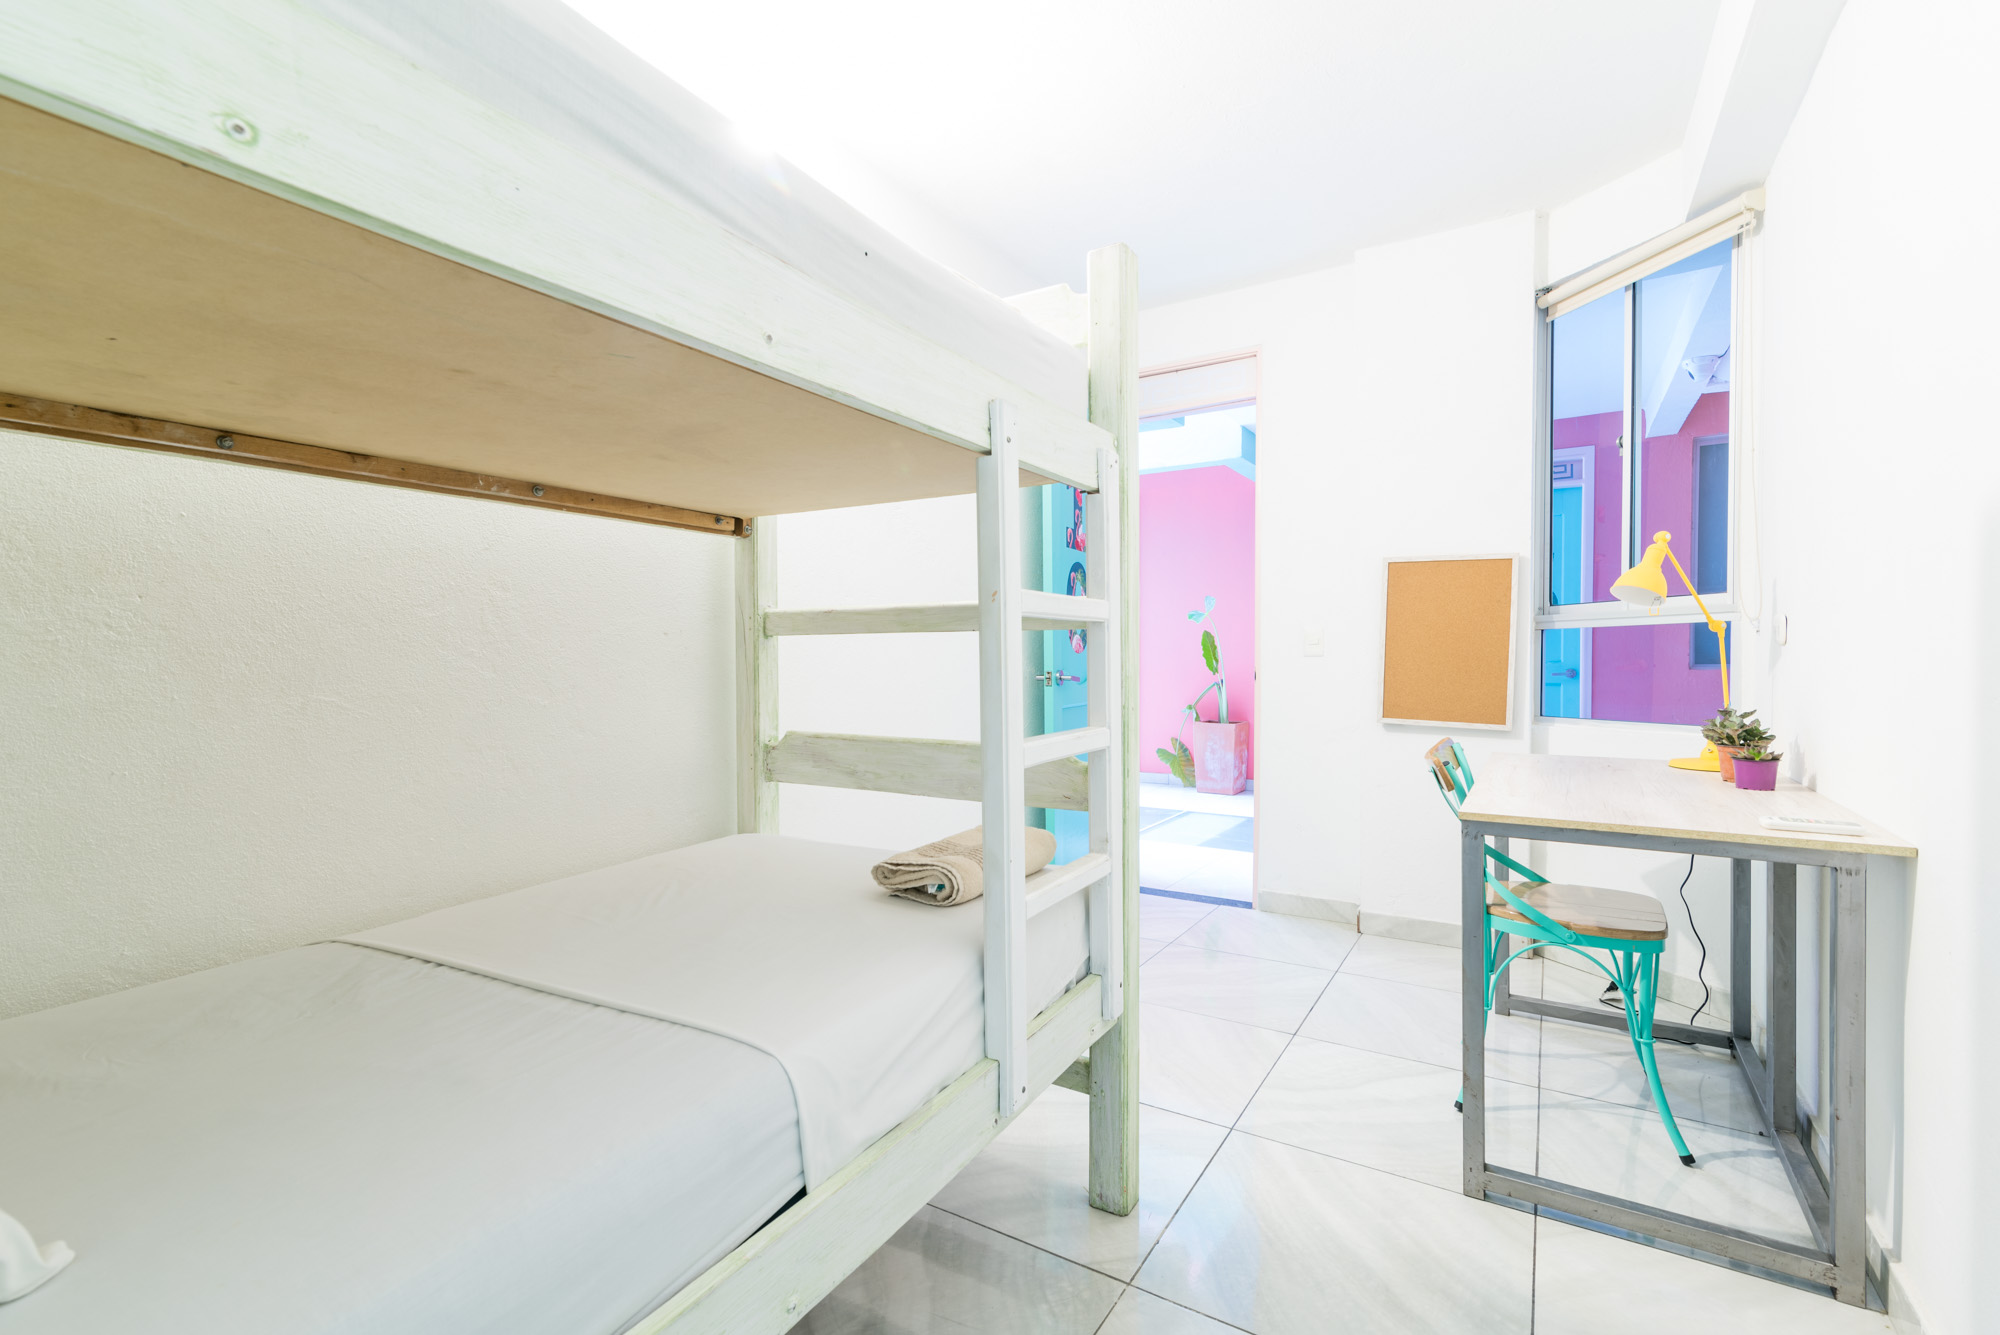 2-bed dorm at Flamingo Coworking in Santa Marta Colombia